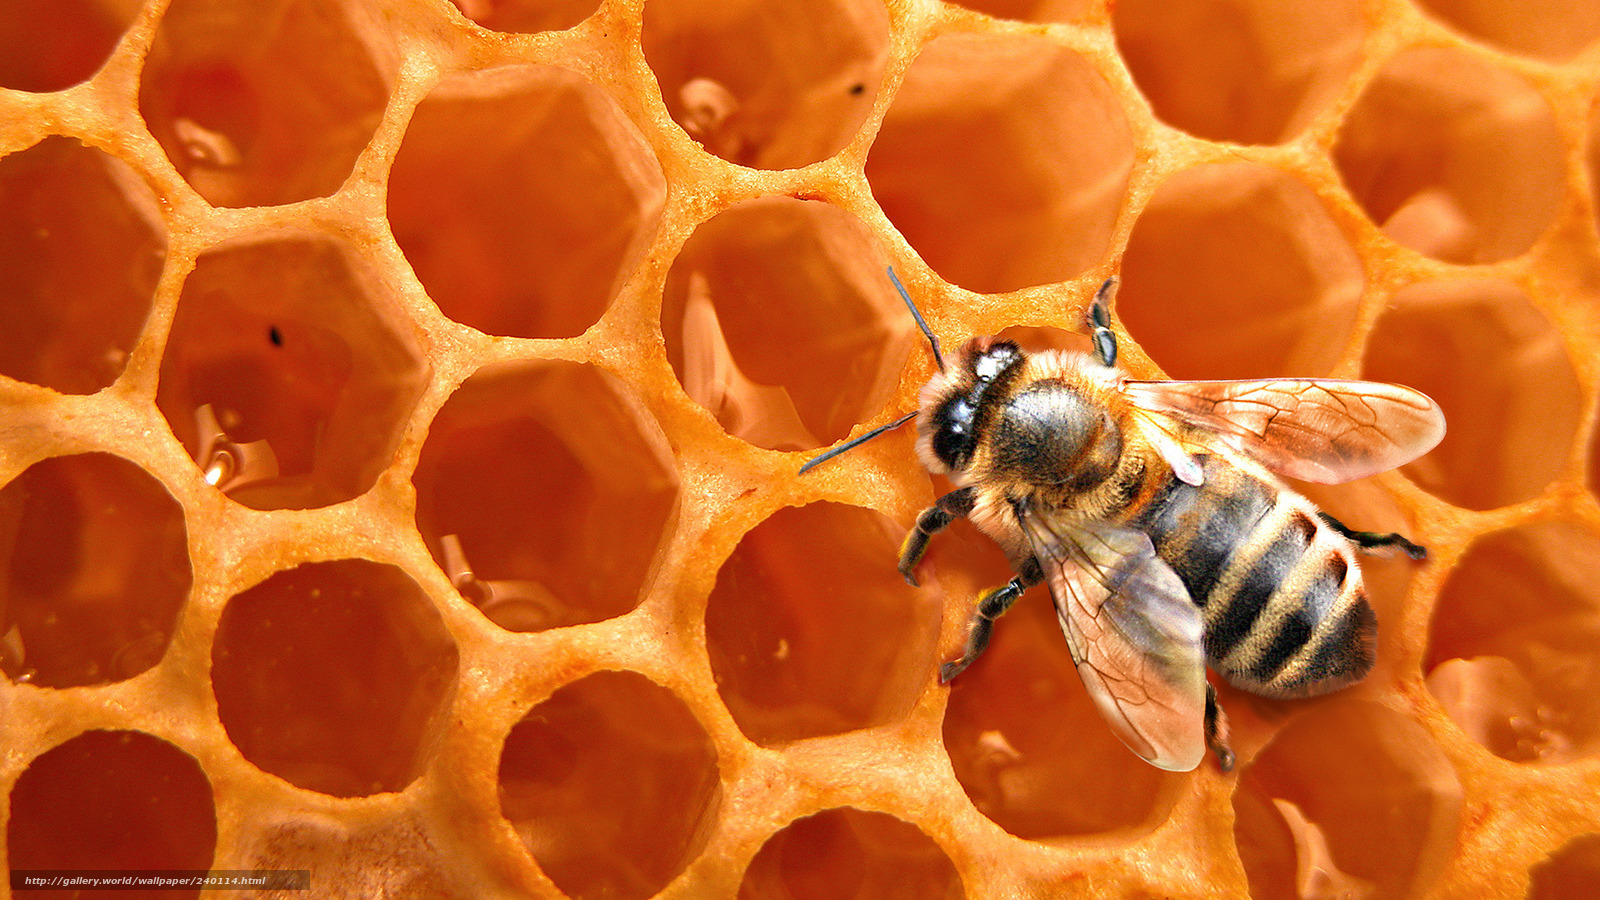 Download Wallpaper Honeycomb Bee Honey Background Free Desktop In The Resolution 1920x1080 Picture No240114